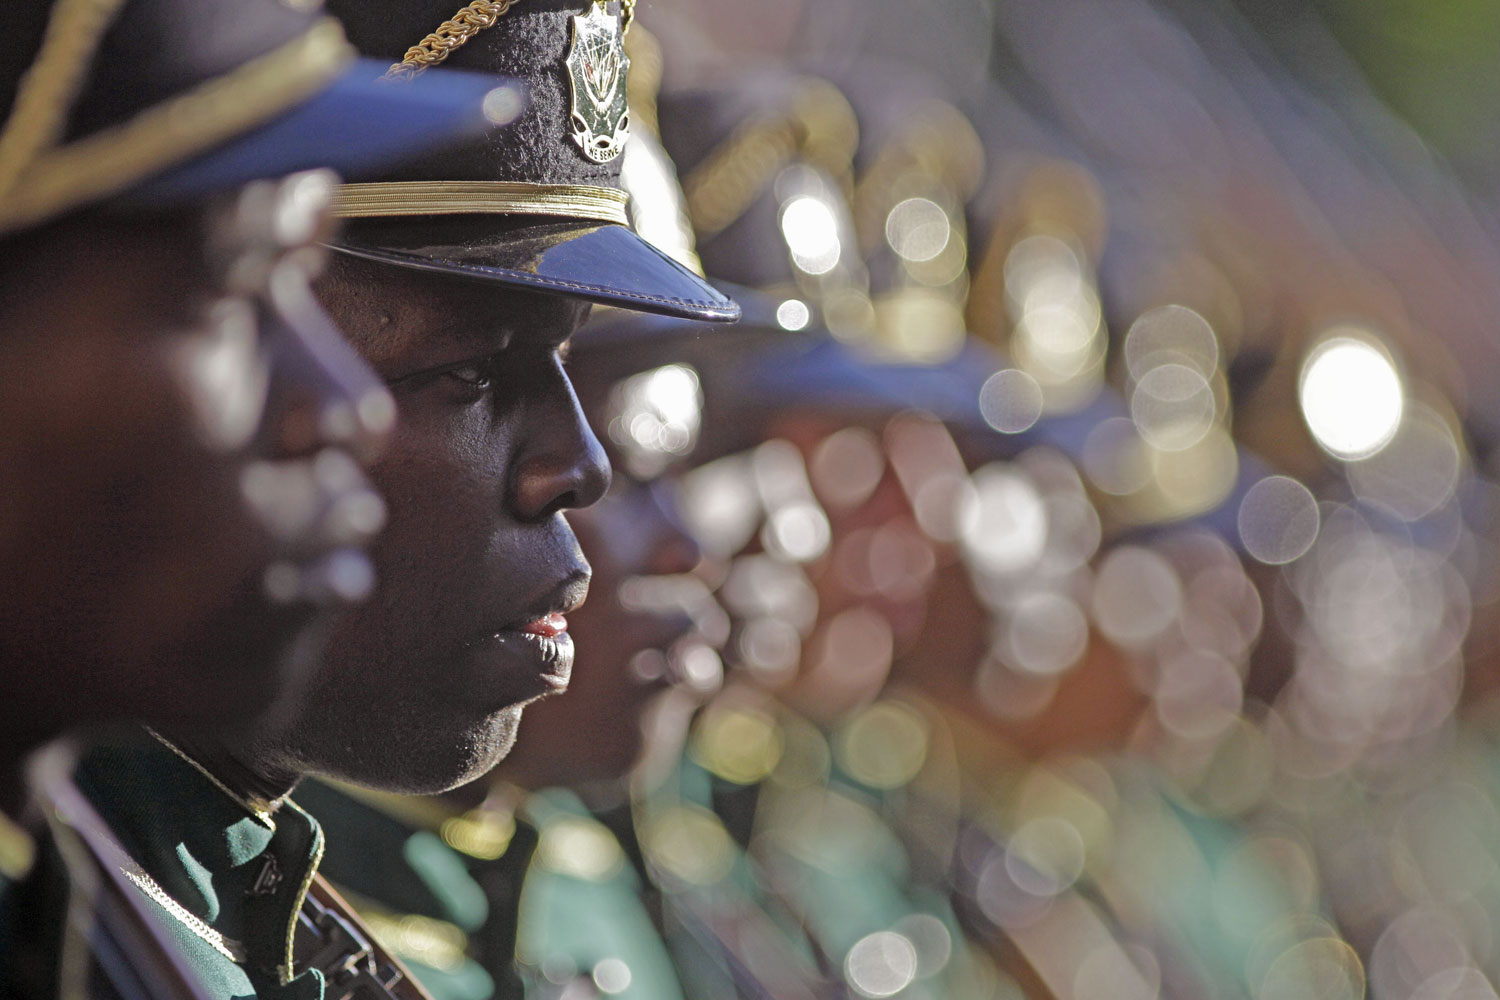 February 9, 2012. South African troops during a guard of honor at the opening of the South African Parliament in Cape Town, South Africa. South African President Jacob Zuma gave the state of the nation address during the opening of parliament in Cape Town.